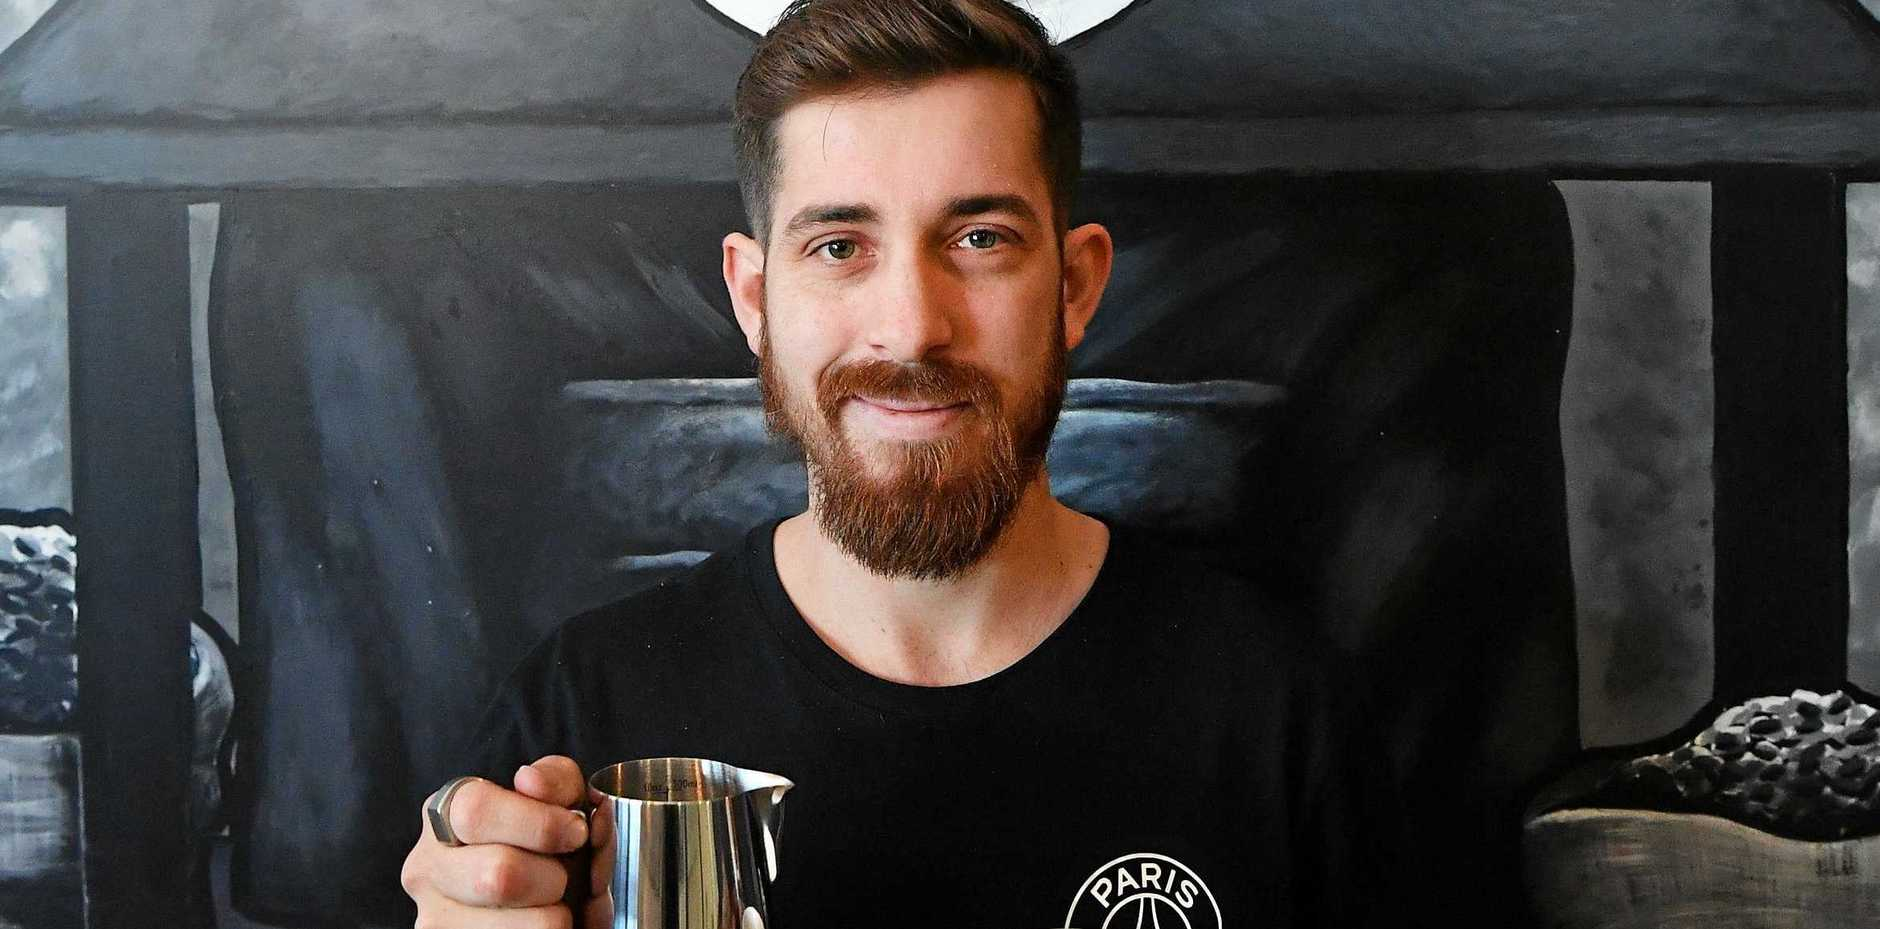 Owner operator Zac Carew and partners are opening their third espresso bar, Bean There Done That, at Bli Bli Village Centre.